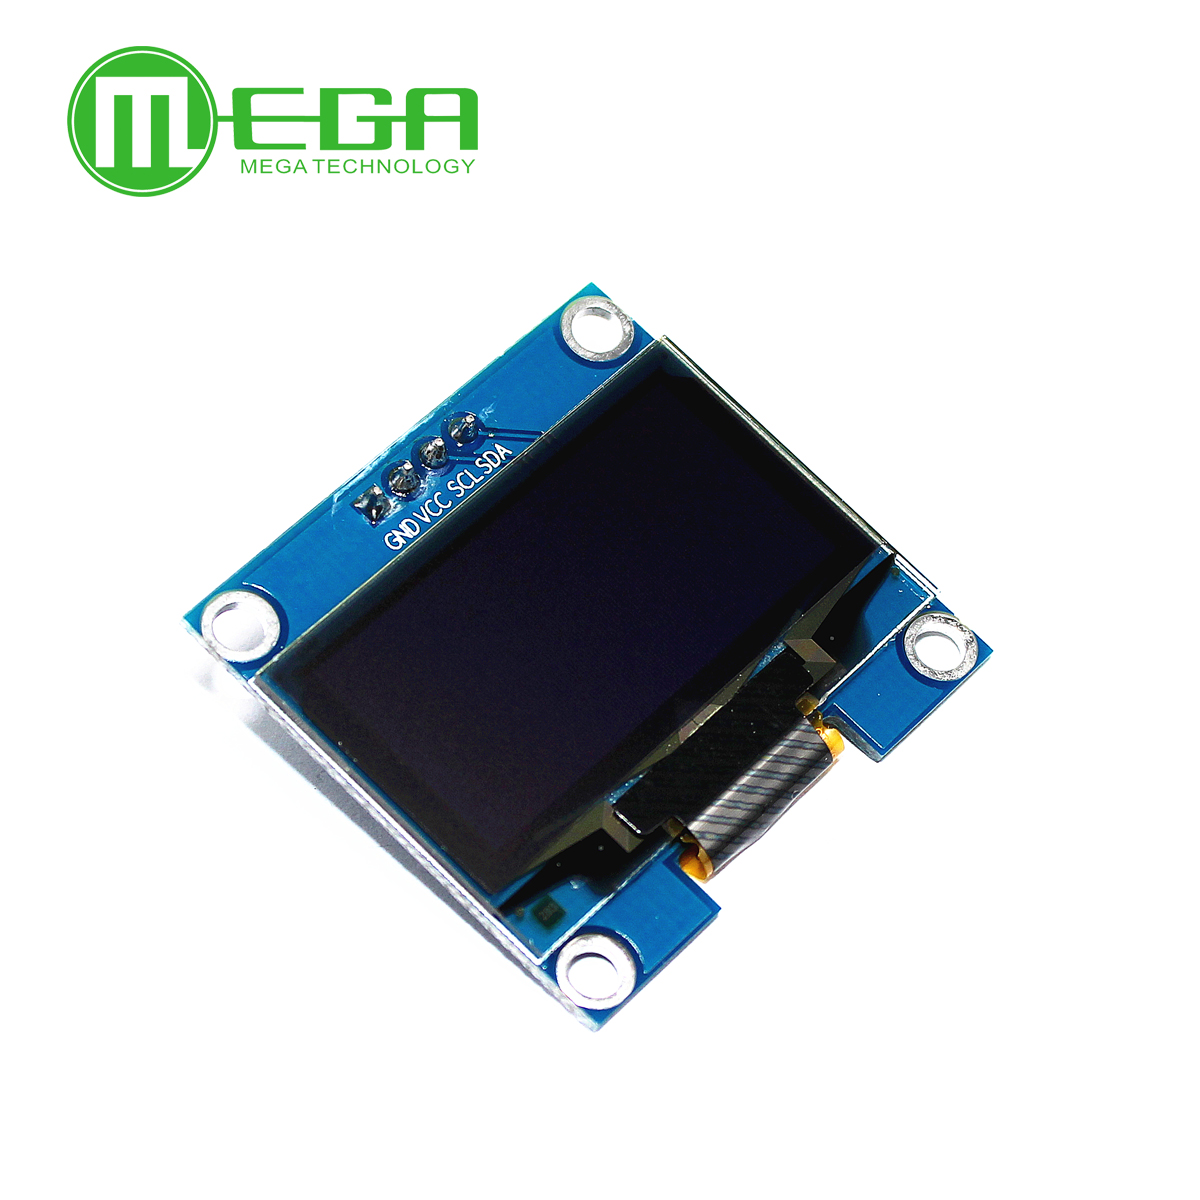 New 5PCS/LOT 1.3 OLED module white color 128X64 1.3 inch OLED LCD LED Display Module For Arduino 1.3 IIC I2C CommunicateNew 5PCS/LOT 1.3 OLED module white color 128X64 1.3 inch OLED LCD LED Display Module For Arduino 1.3 IIC I2C Communicate